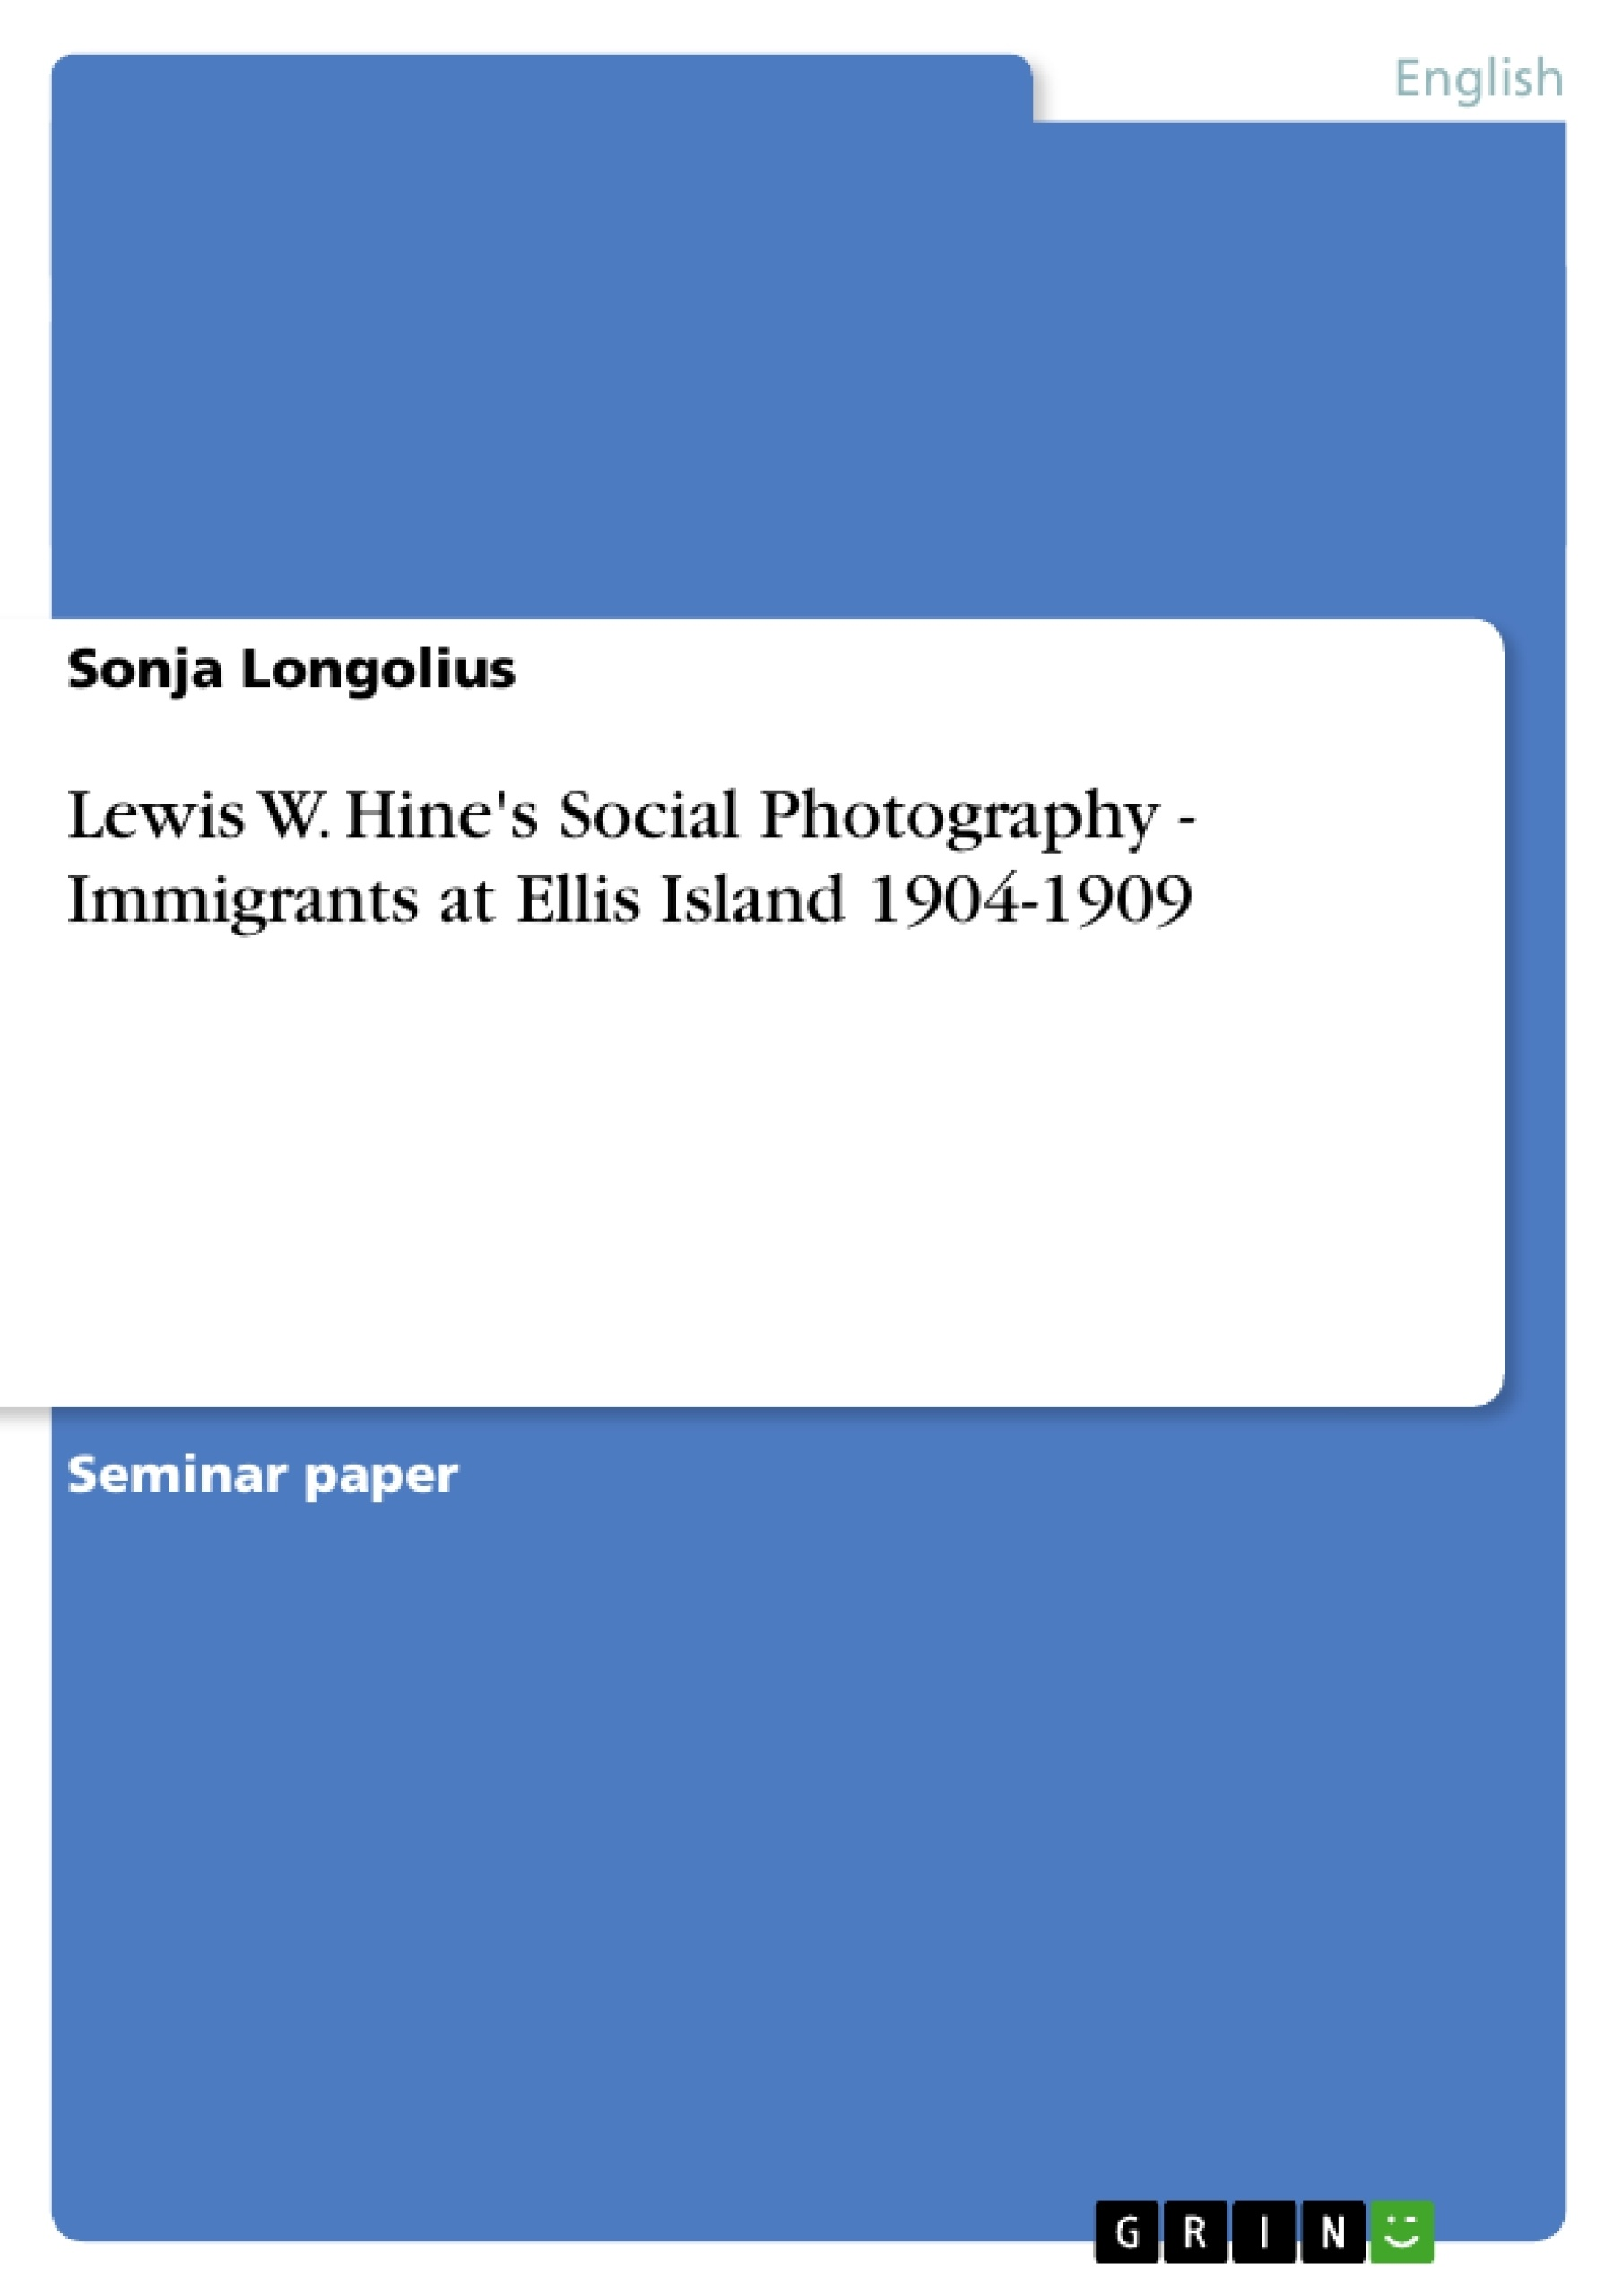 Title: Lewis W. Hine's Social Photography - Immigrants at Ellis Island 1904-1909